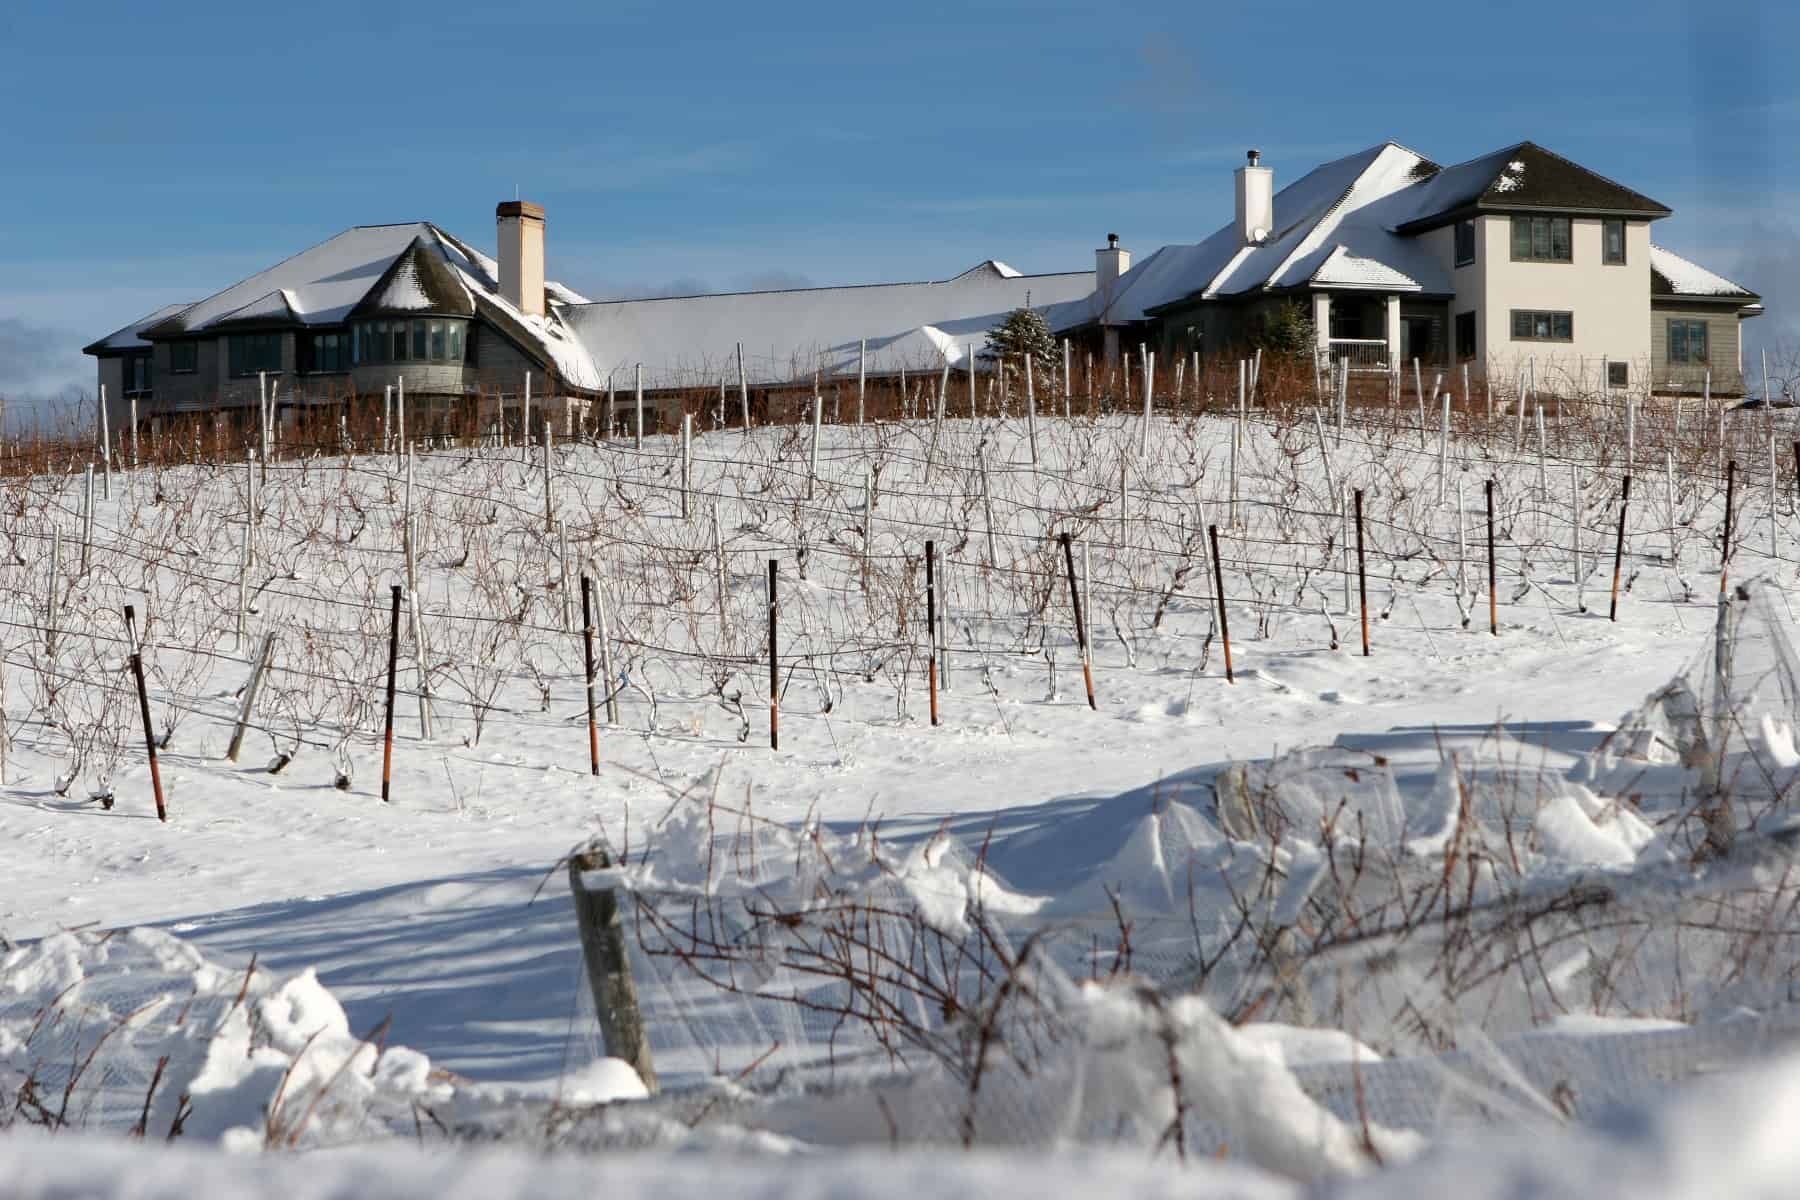 Chateau Chantal in the winter. Photo courtesy of Chateau Chantal